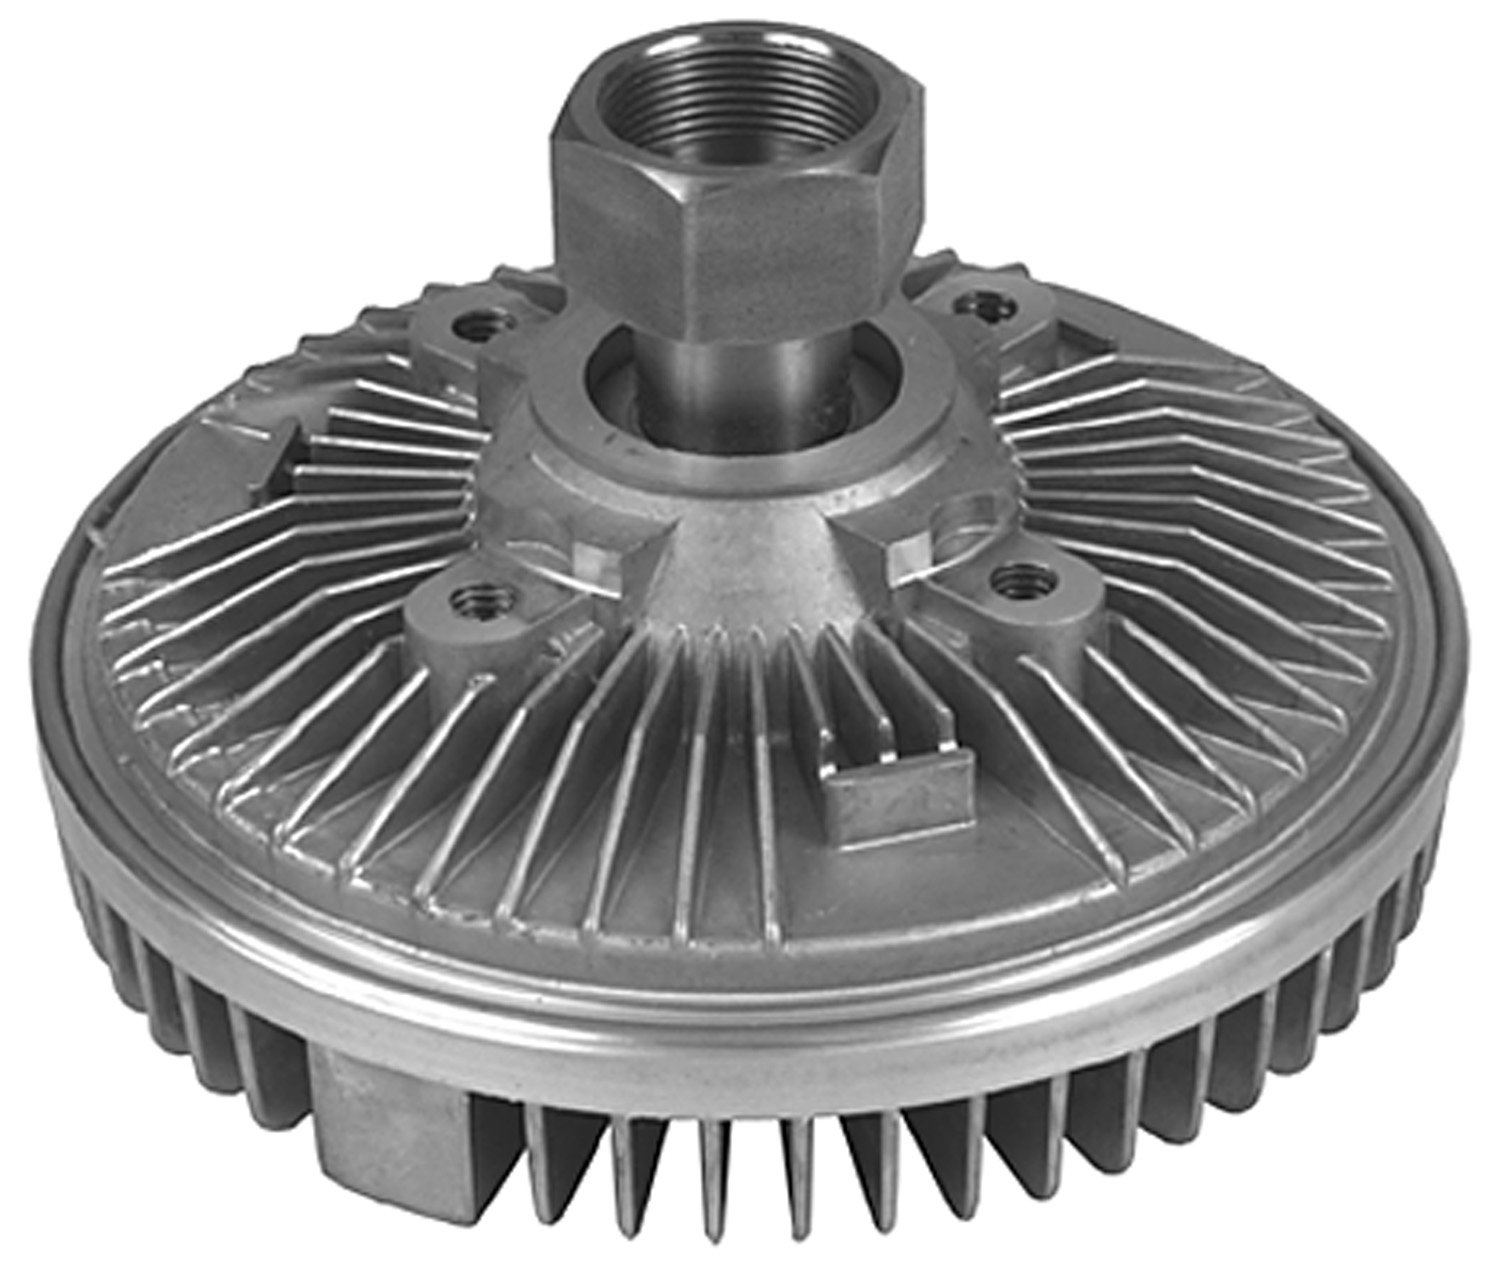 Hayden Automotive 2791 Premium Fan Clutch